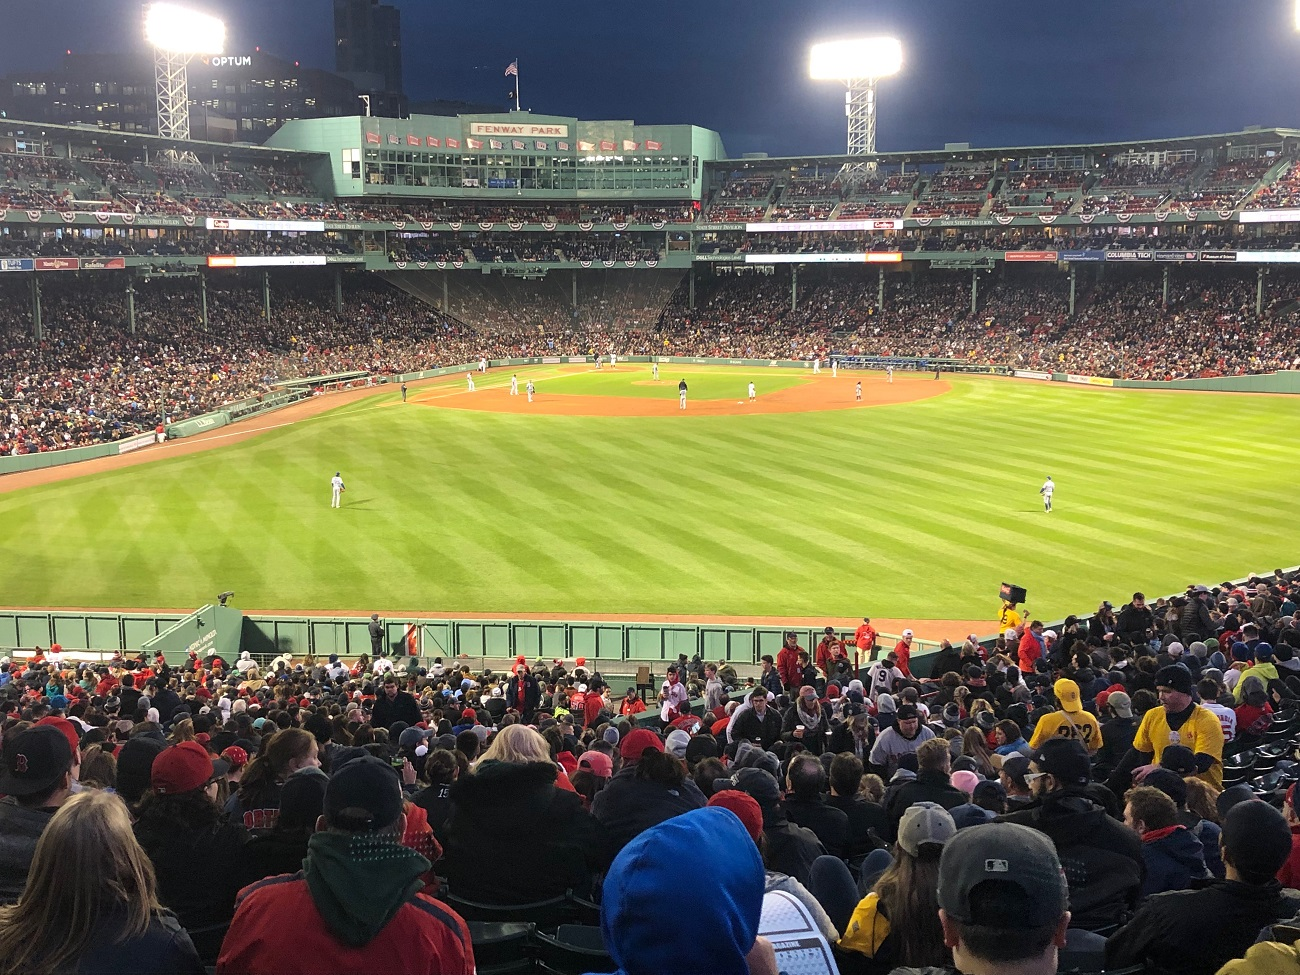 Night Game at Fenway Park